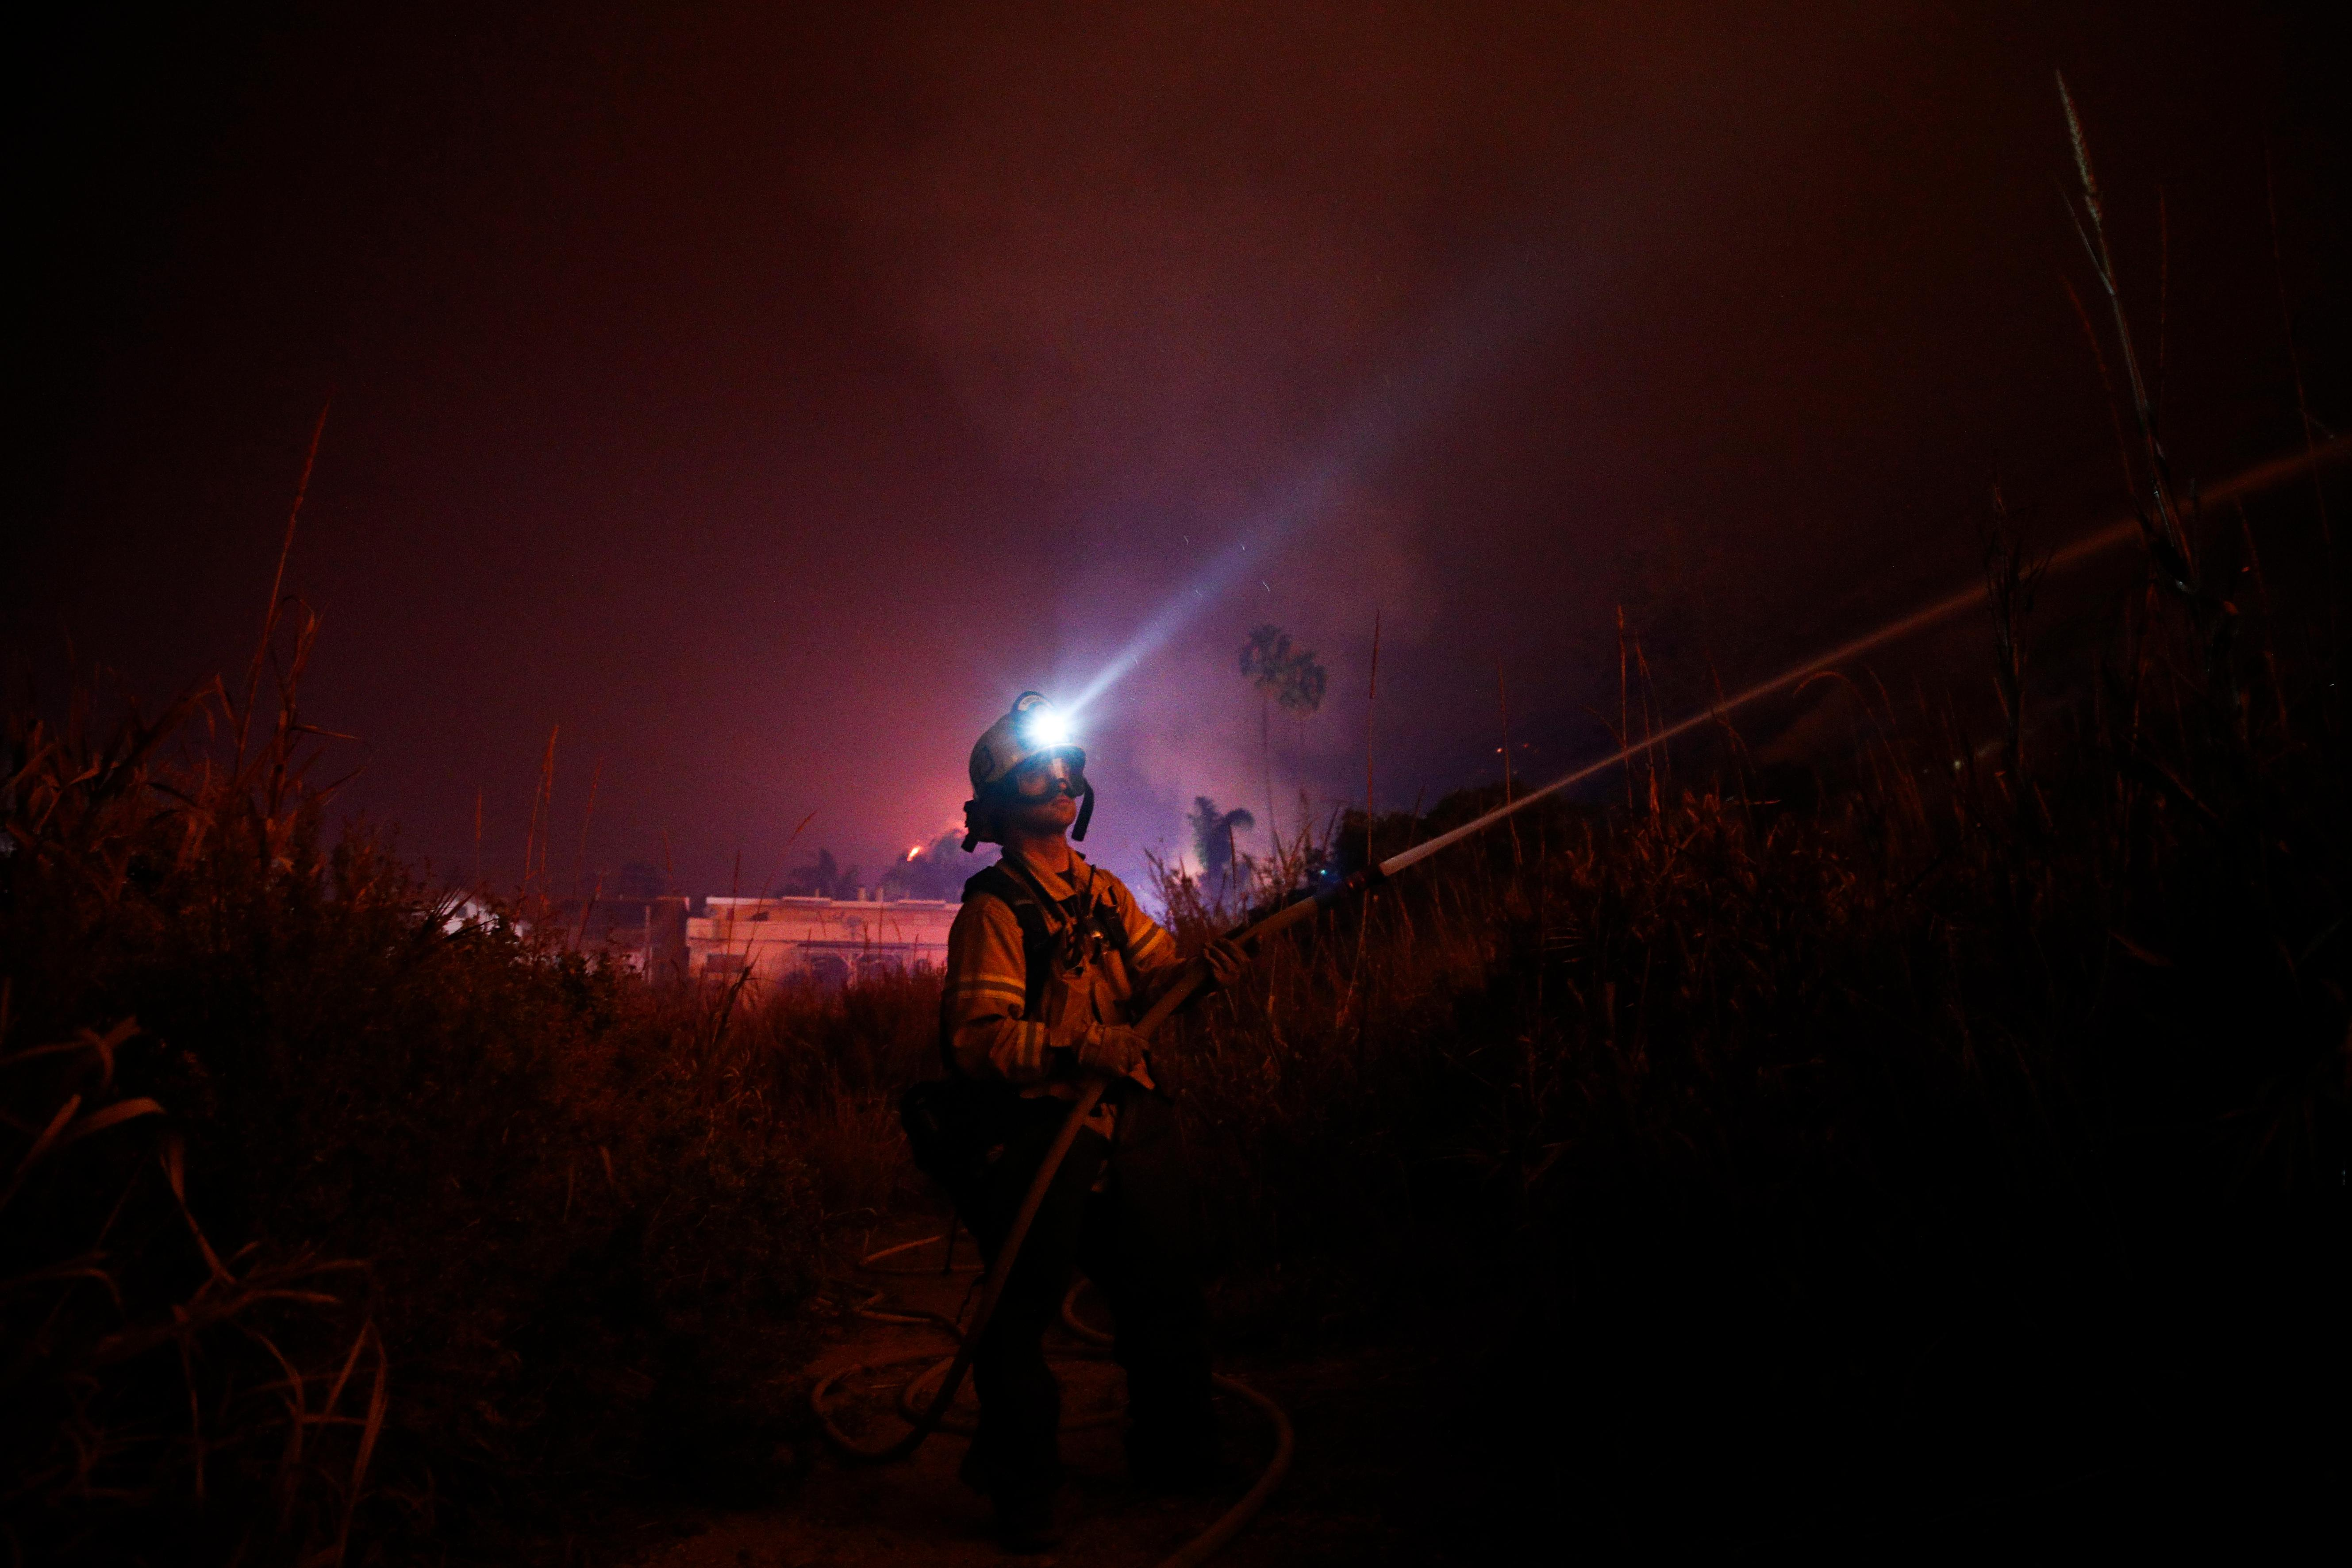 Firefighter Ryan Spencer battles a wildfire as it burns along a hillside toward homes in La Conchita, Calif., Thursday, Dec. 7, 2017. The wind-swept blazes have forced tens of thousands of evacuations and destroyed dozens of homes. (AP Photo/Jae C. Hong)